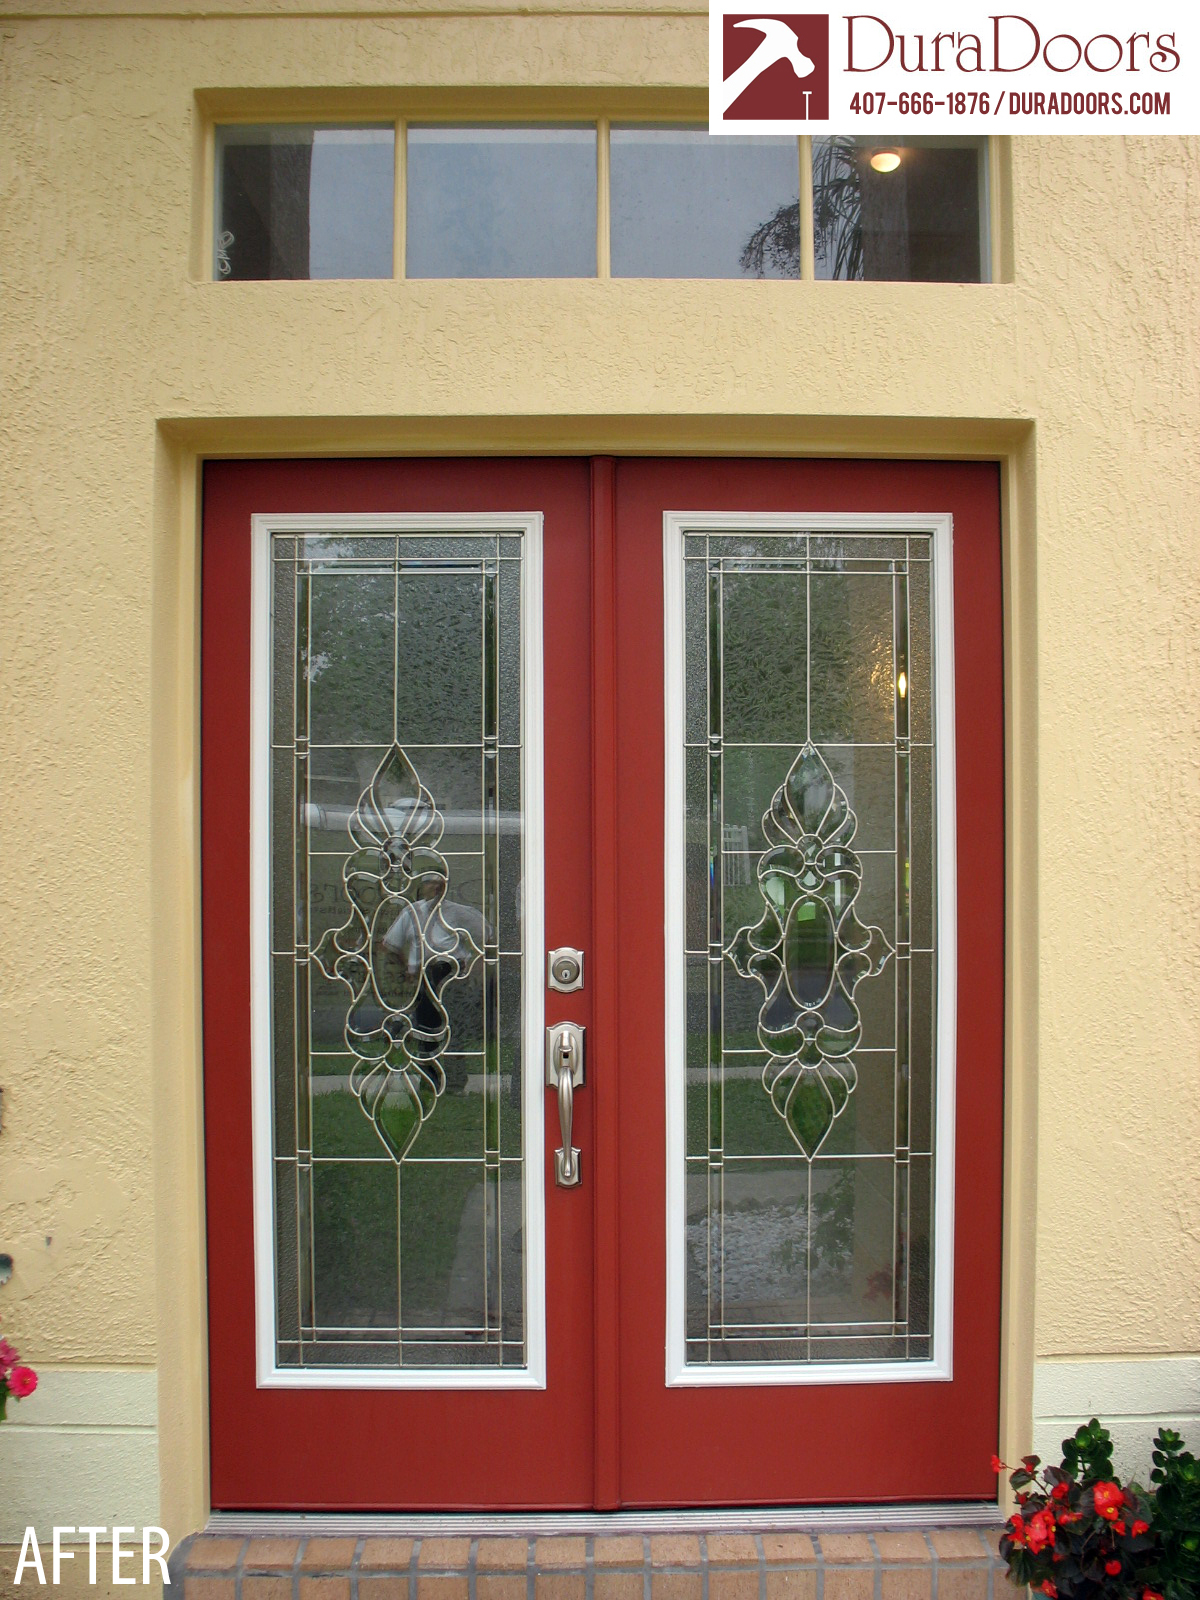 We Transformed This Double Door Entrance For Customers In East Orlando, FL,  By Installing Decorative Glass In Their Existing Doors.